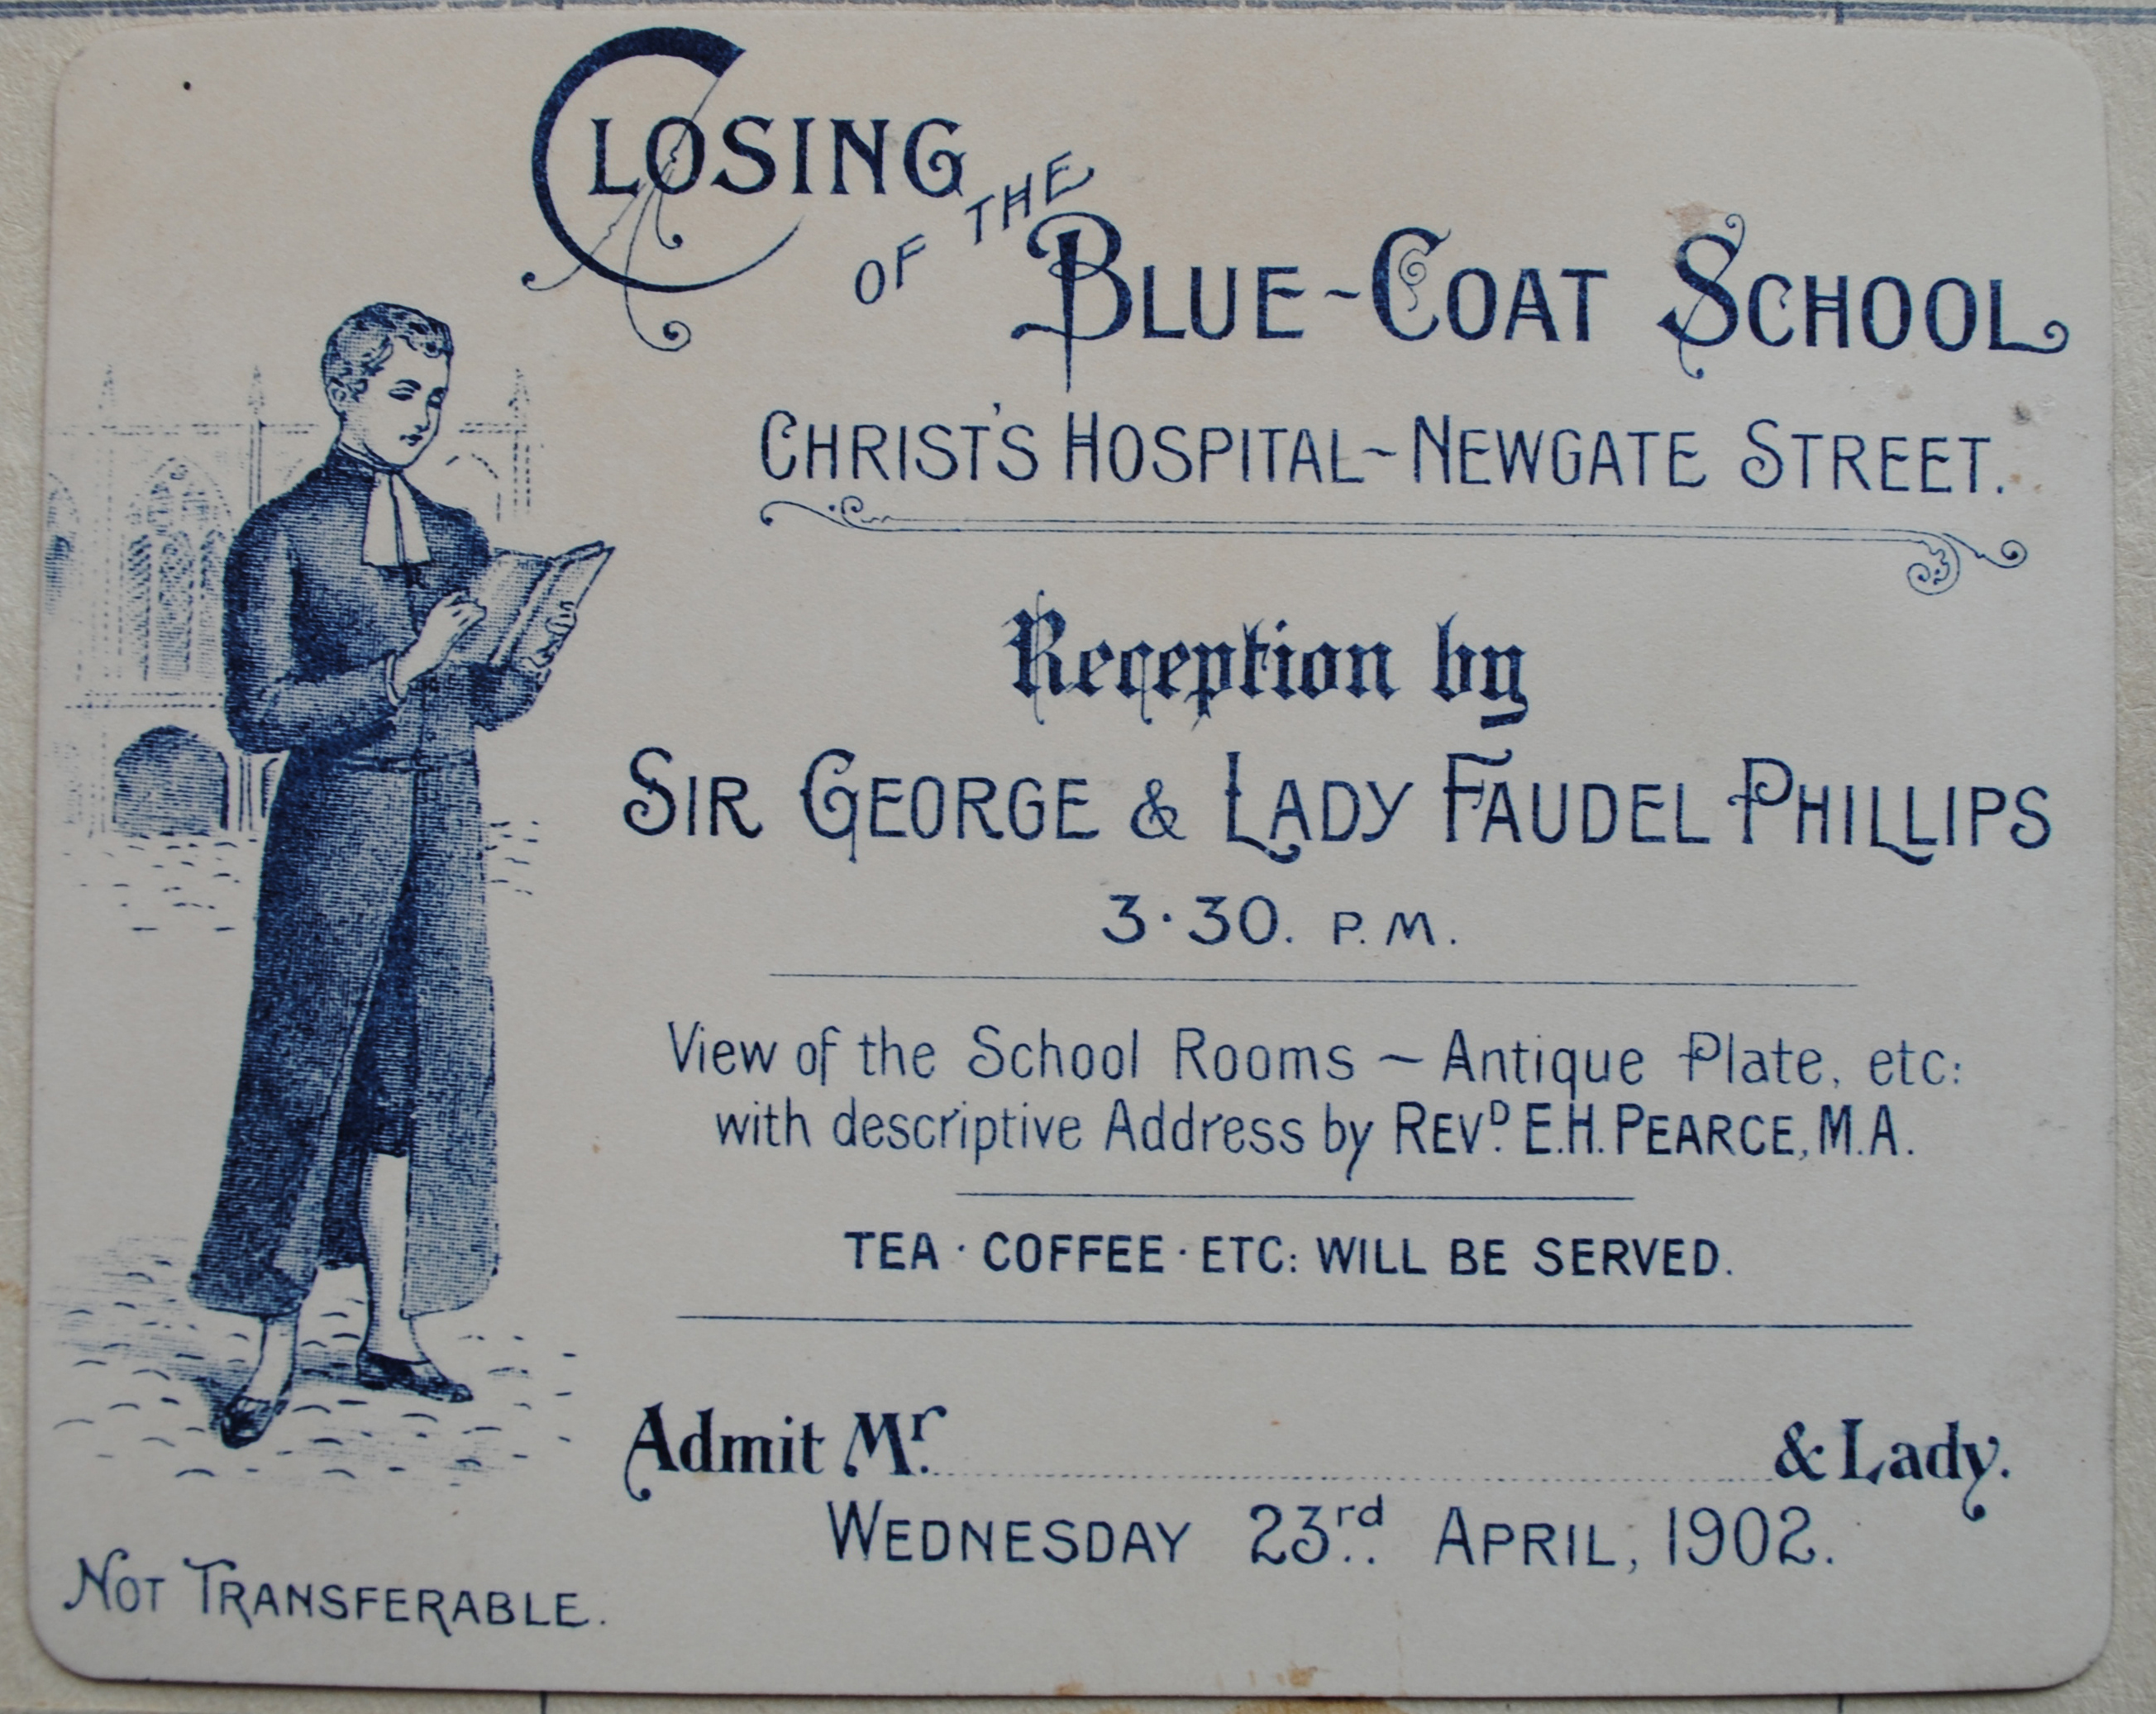 Closure of London school in 1902